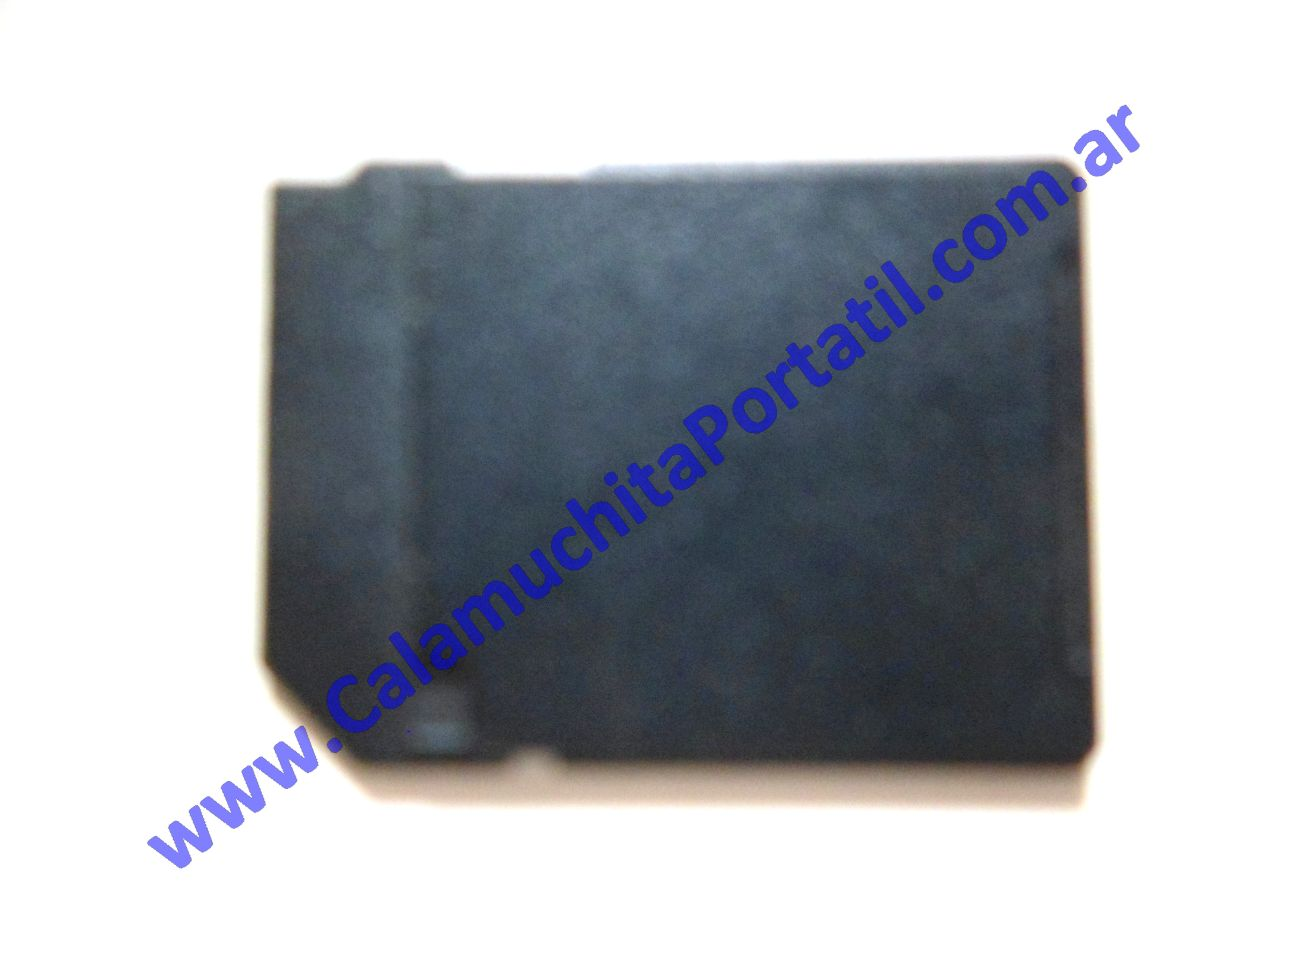 0076XPS Protector SD Asus Eee PC 1000HE